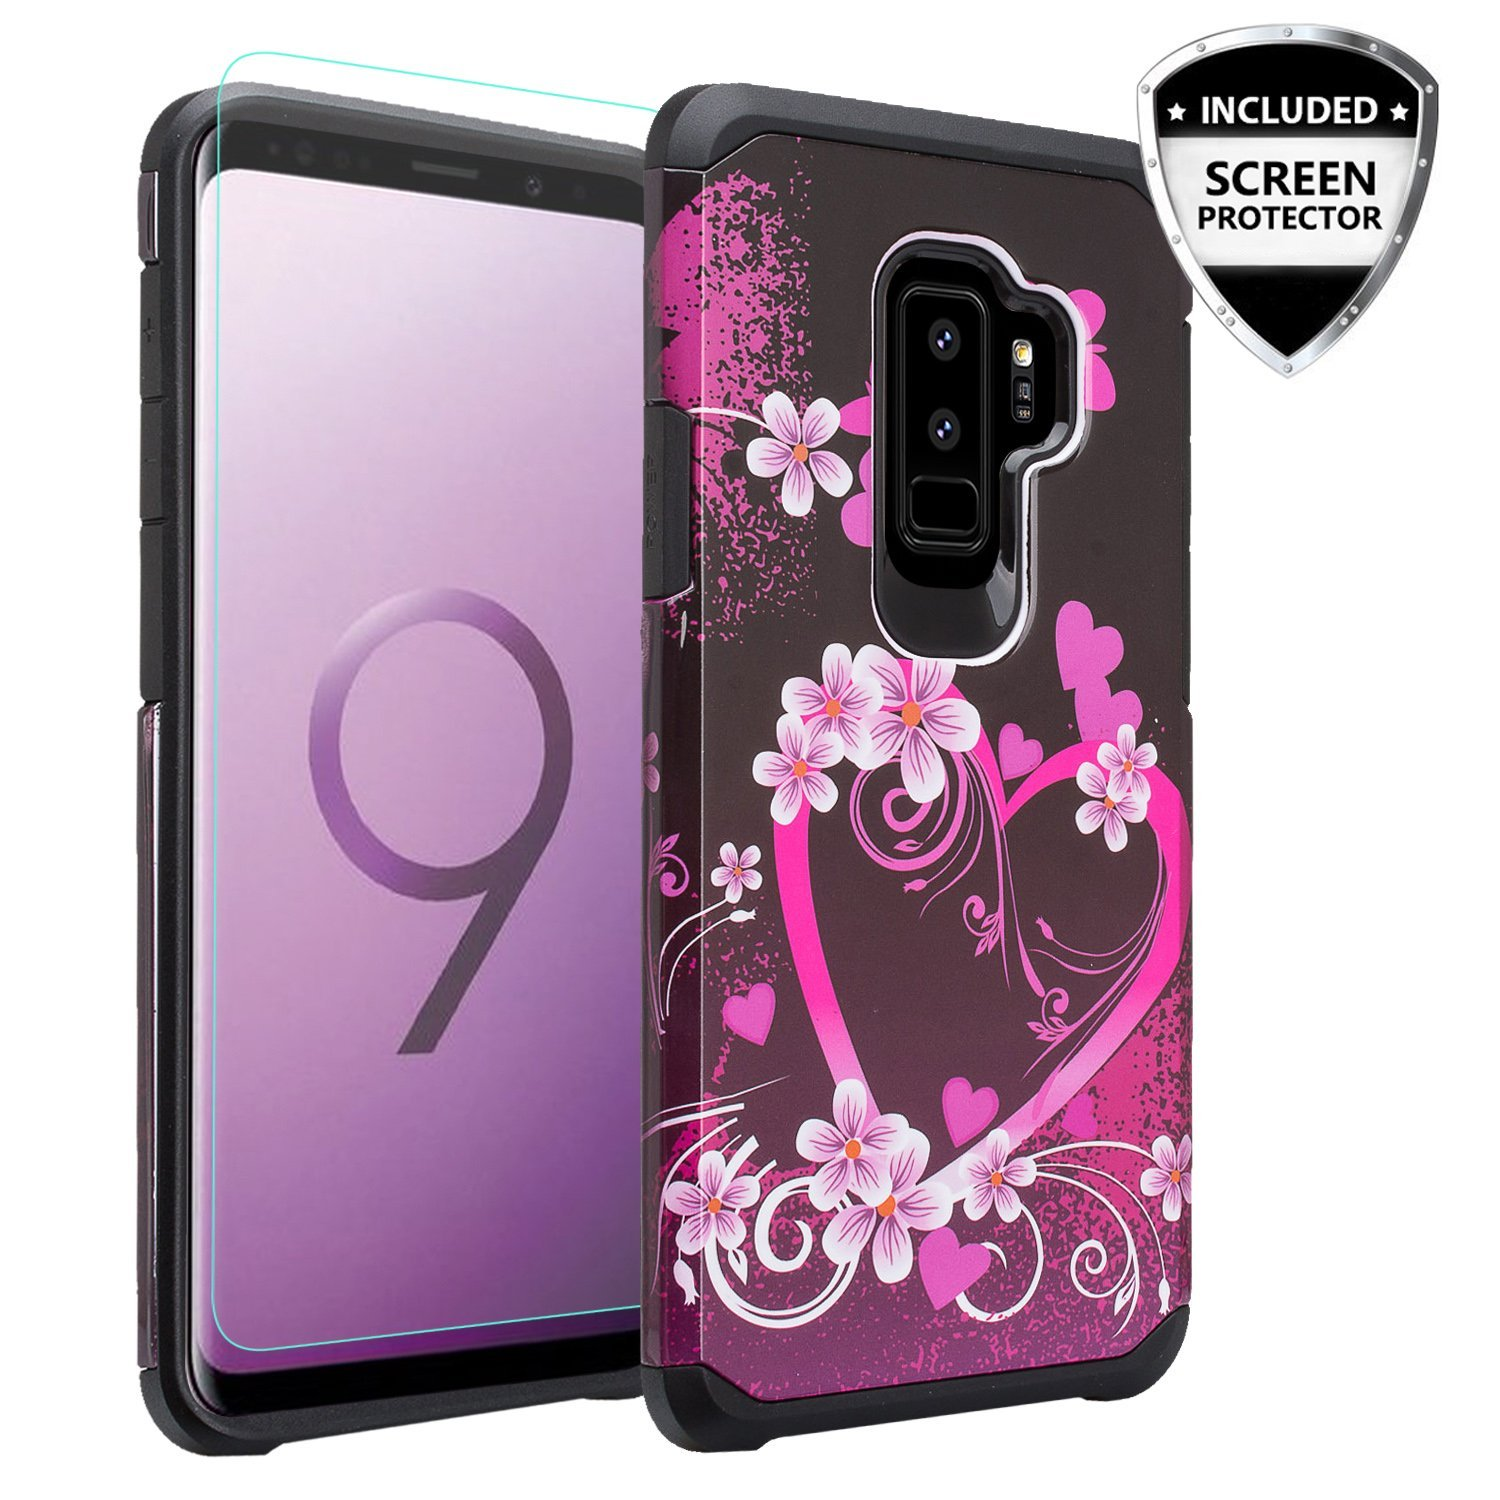 Samsung Galaxy S9 Case, SM-G960 Slim [Dual Layer] Hybrid Shock Proof Phone Cover - Heart Butterflies